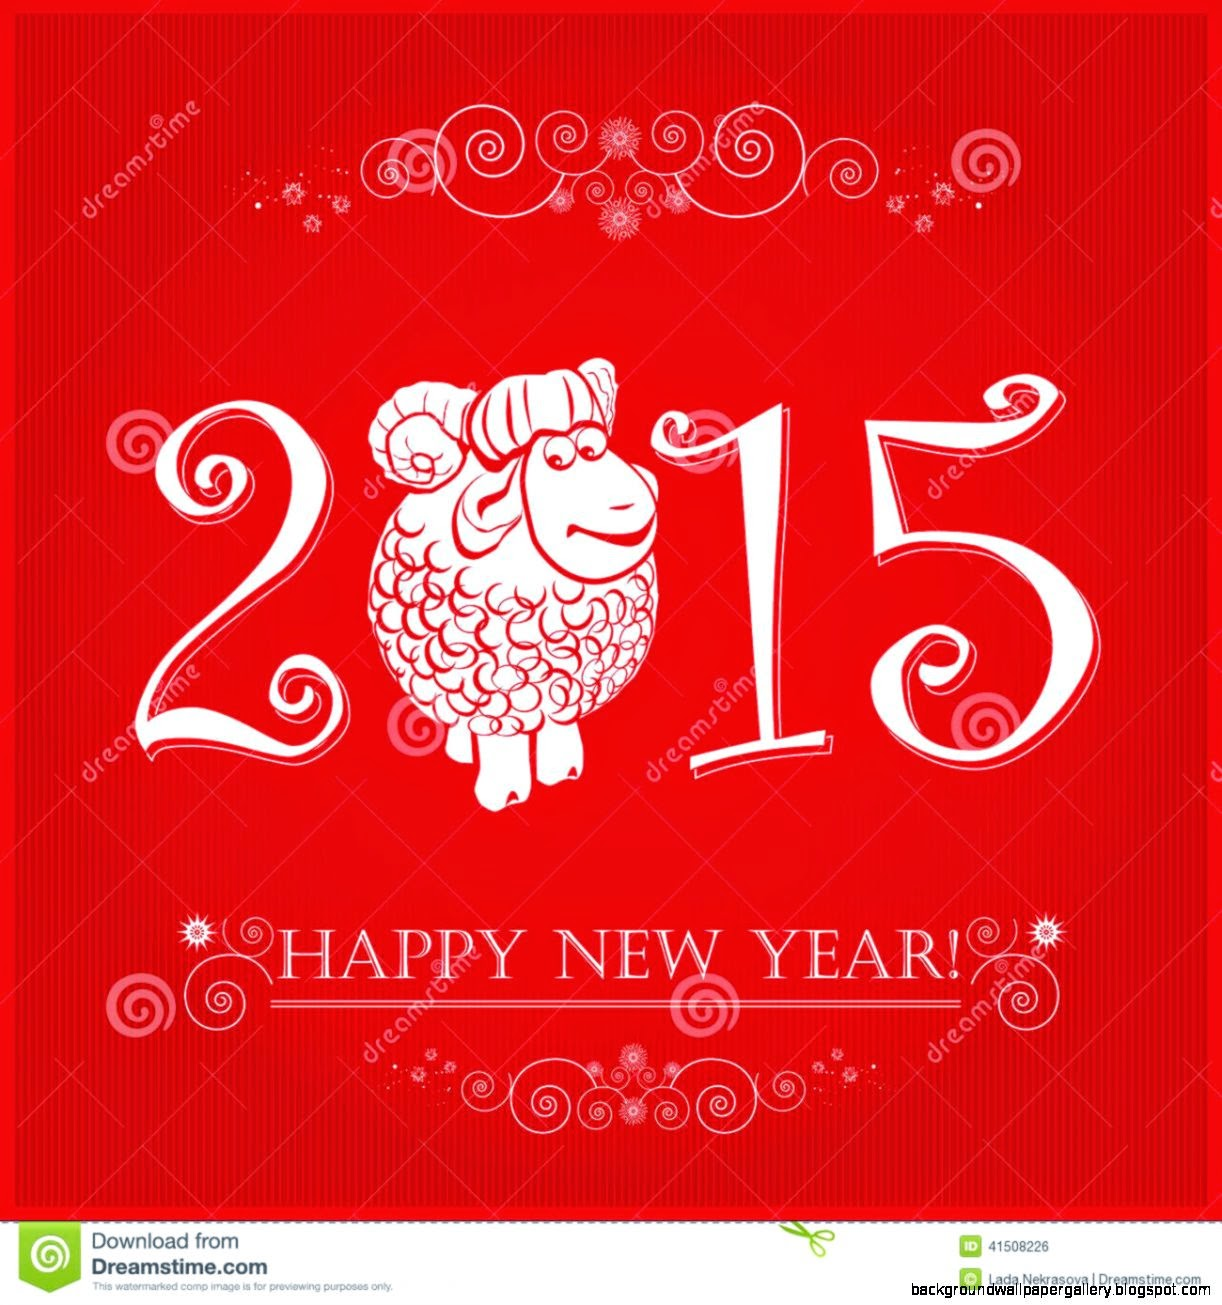 Deign Funny Happy New Year Wallpaper   Background Wallpaper Gallery